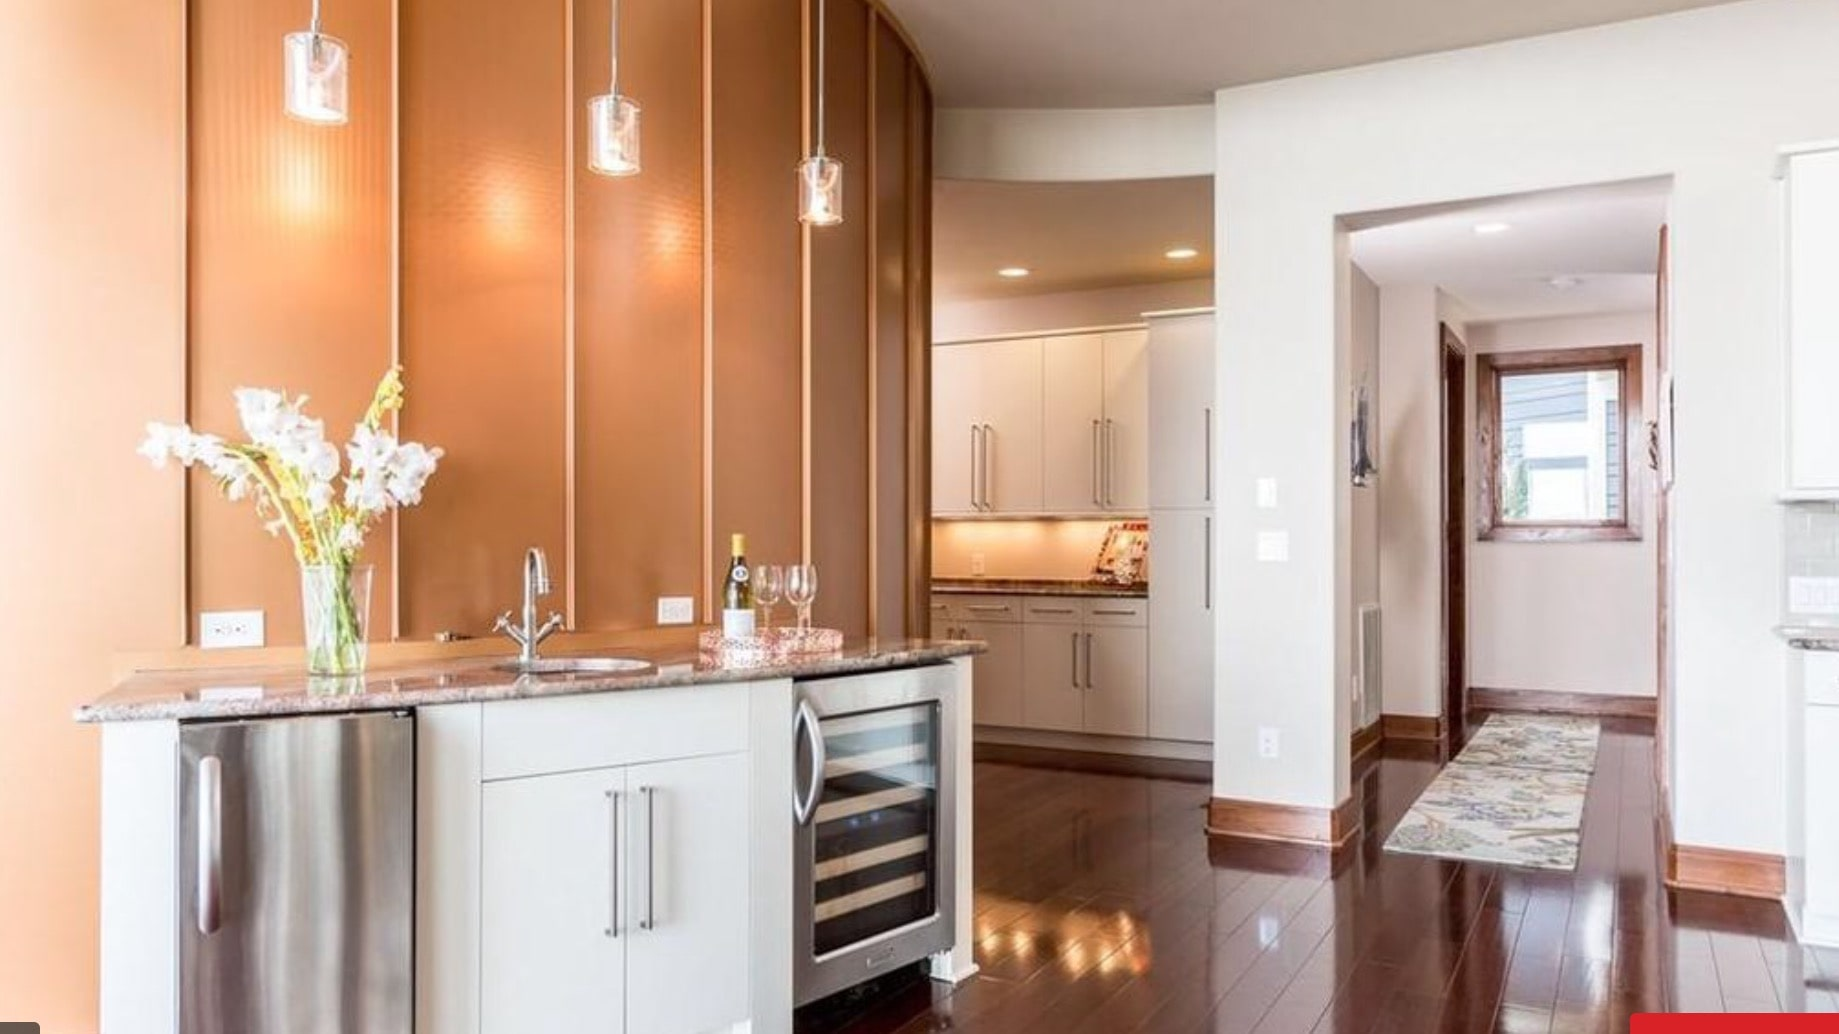 Curved wet bar perfect for entertaining.  The pendant lights pop against the copper colored standing seam metal curved wall.